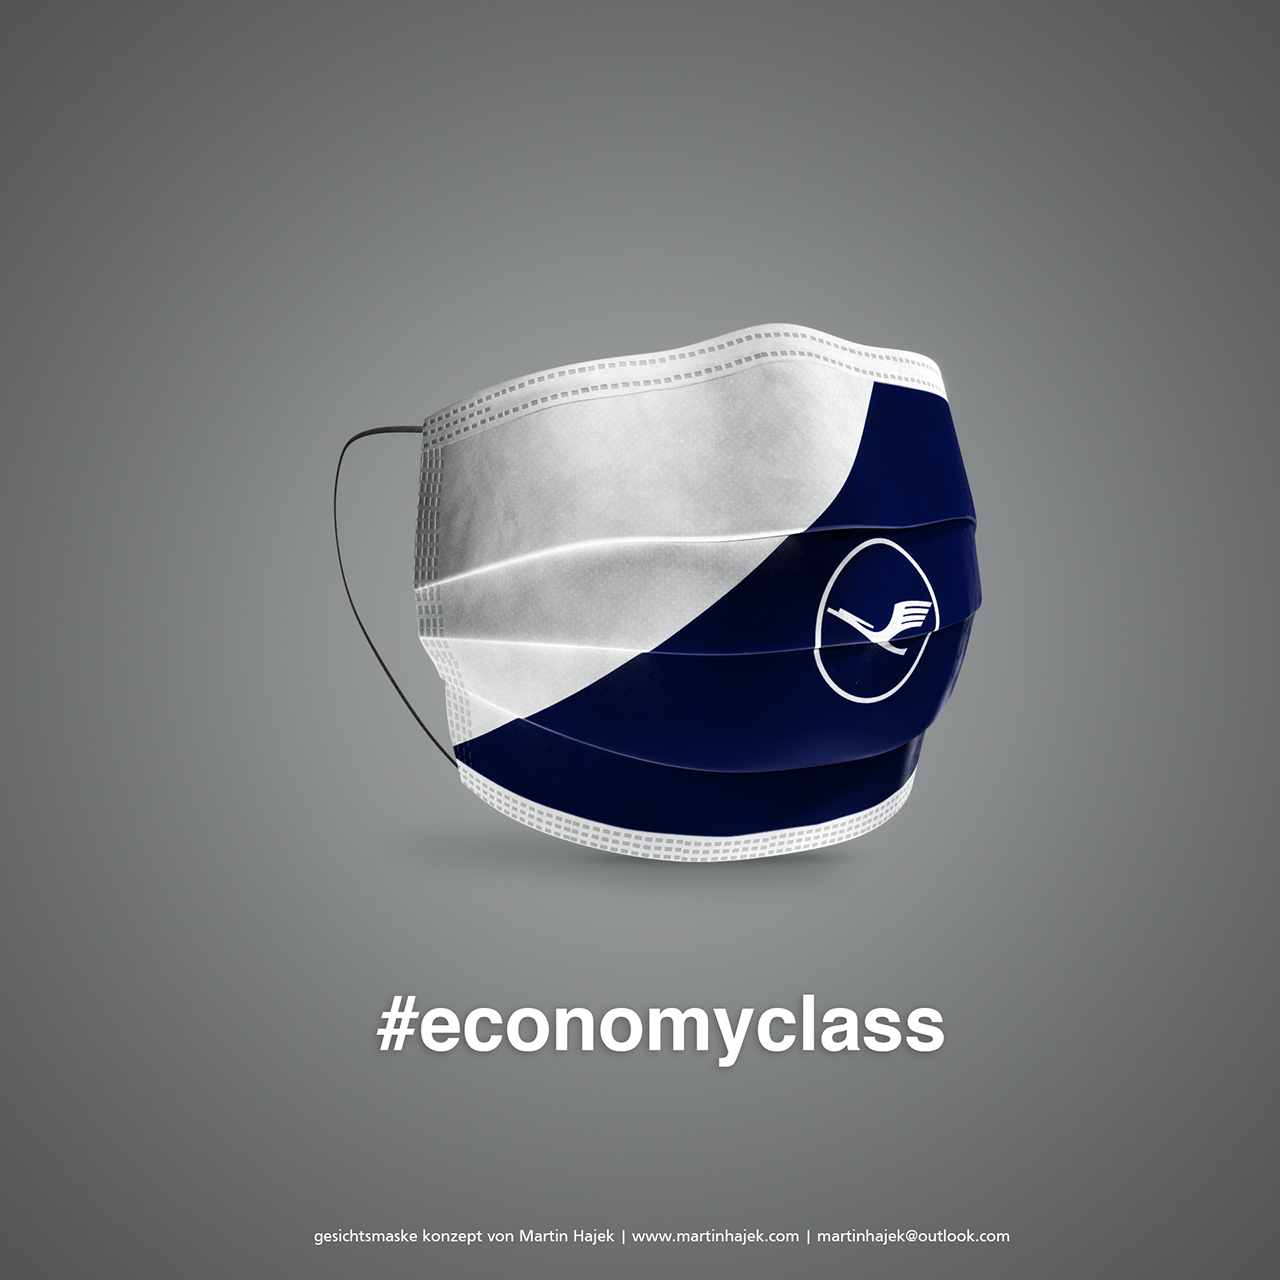 Face masks with airline branding